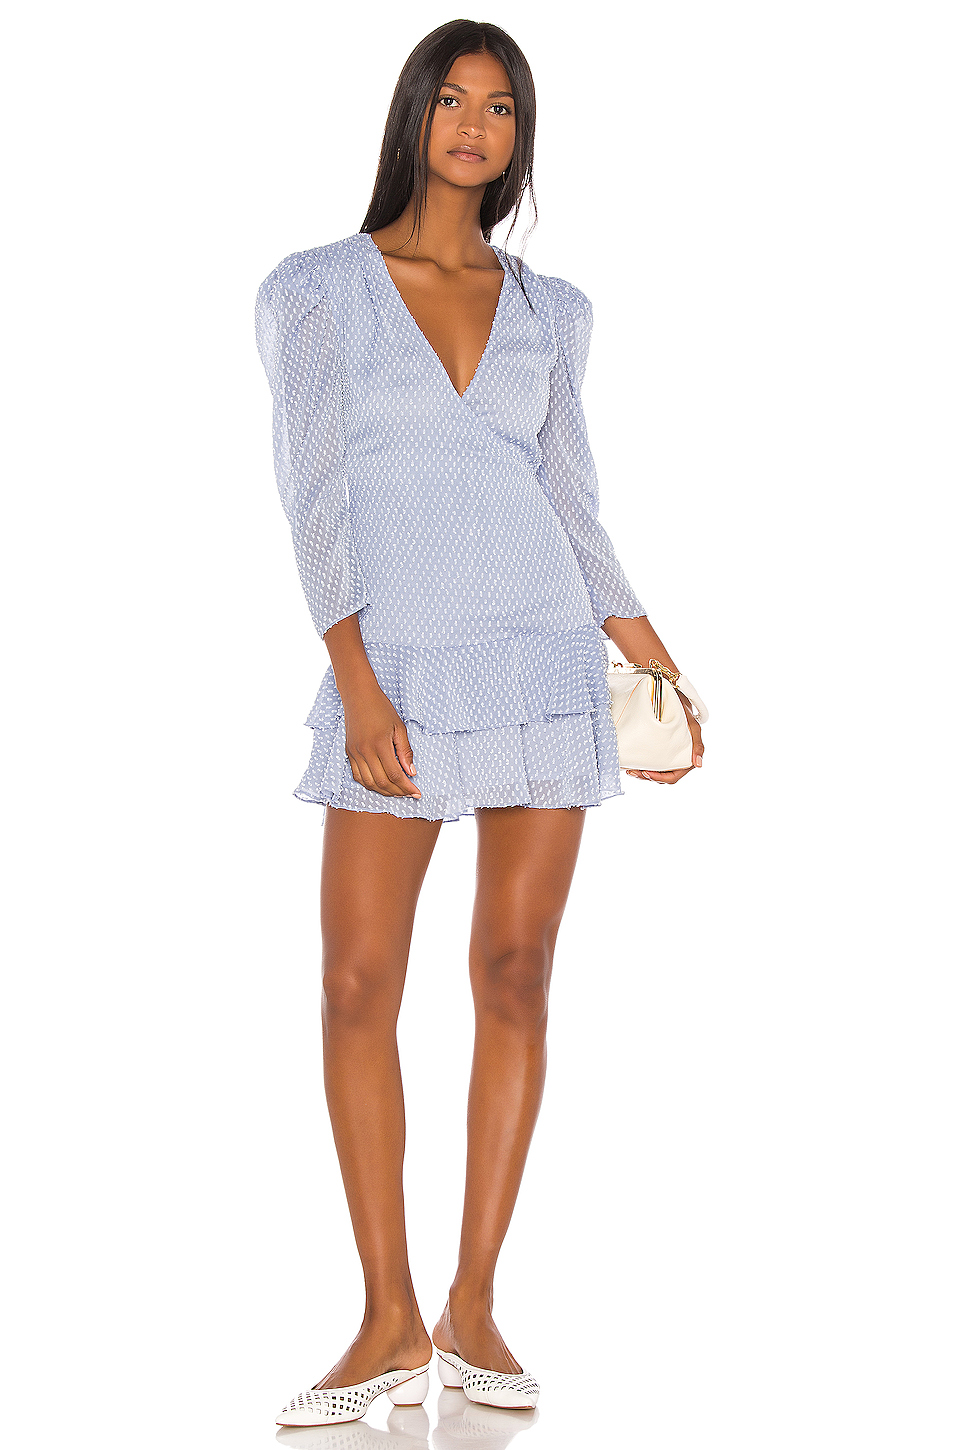 Song of Style x REVOLVE Jace Mini Dress